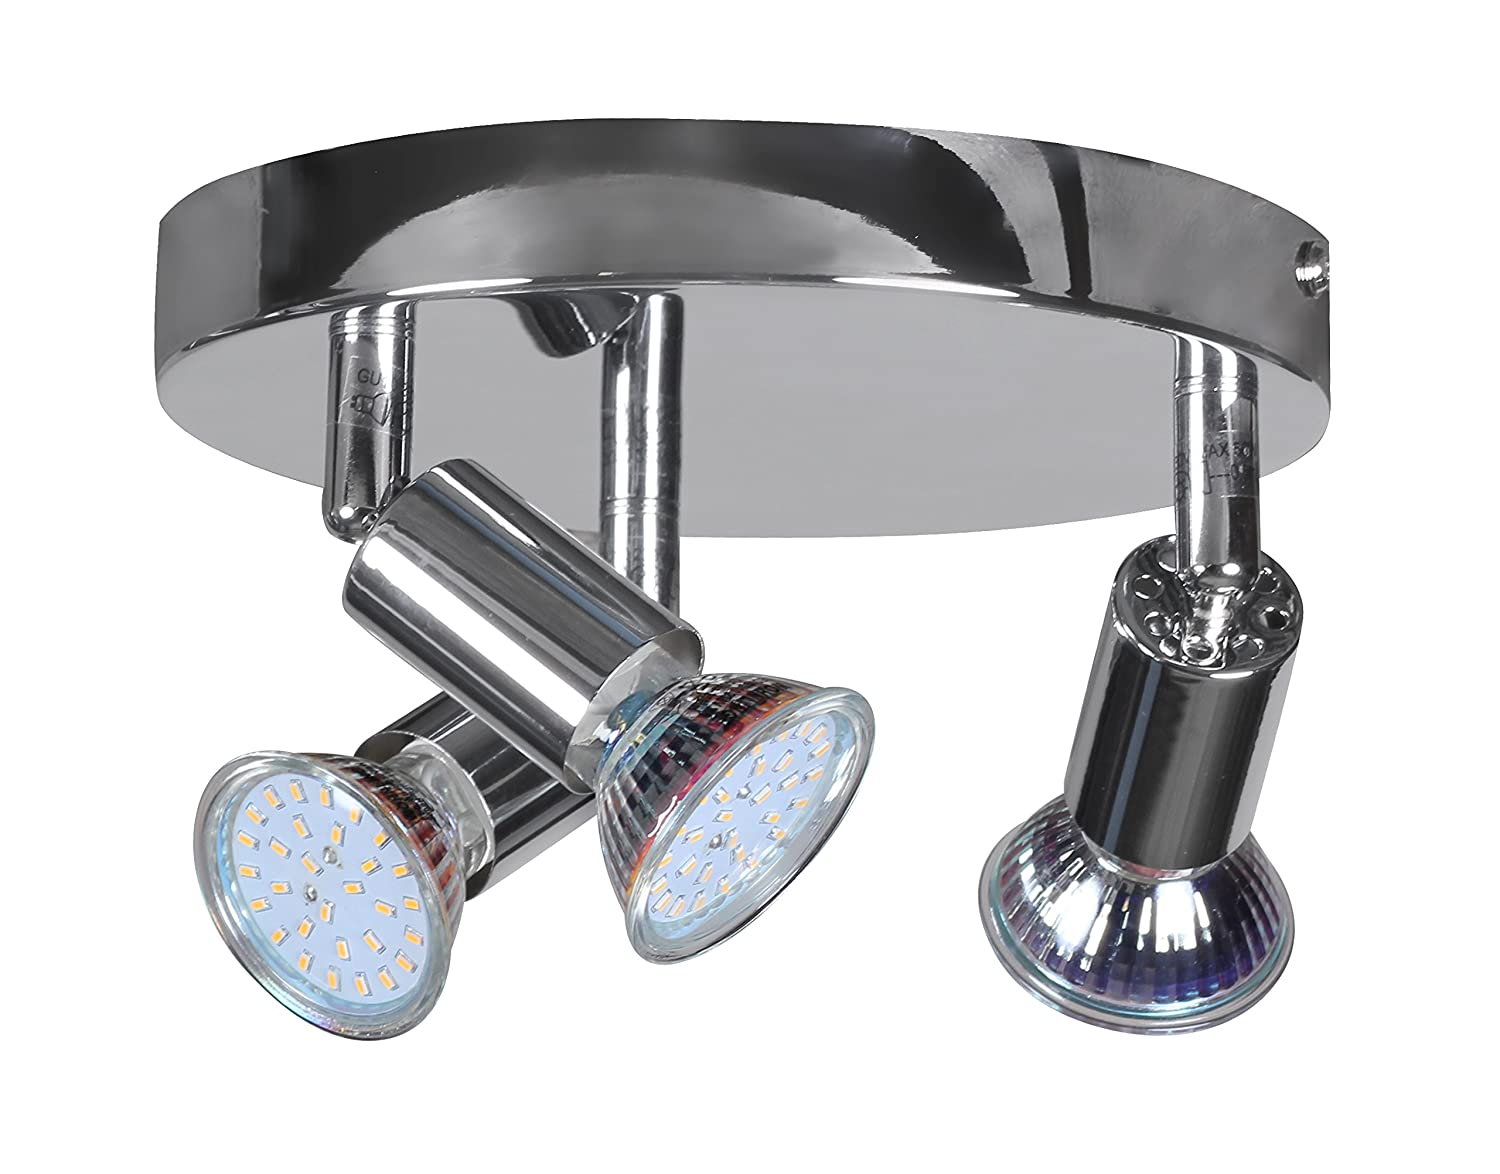 Wohnling 3er led strahler deckenlampe rondell spotsystem led wohnling 3er led strahler deckenlampe rondell spotsystem led wandlampe lampe spot eek a amazon beleuchtung parisarafo Image collections